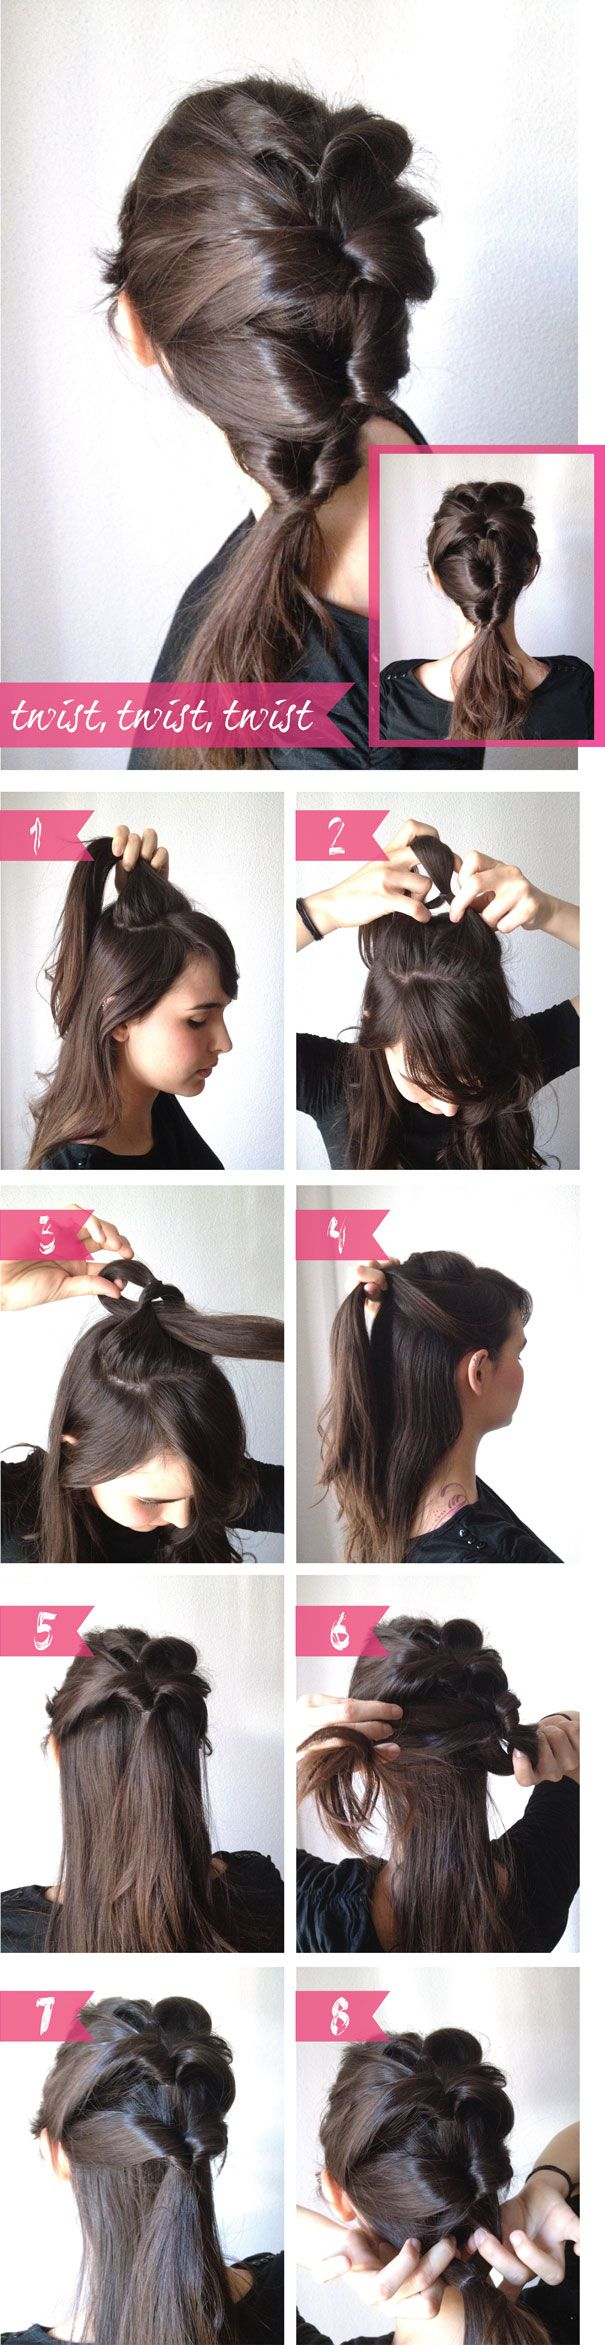 Diy hairstyle http://imageshaven.com/diy-hairstyle-54/